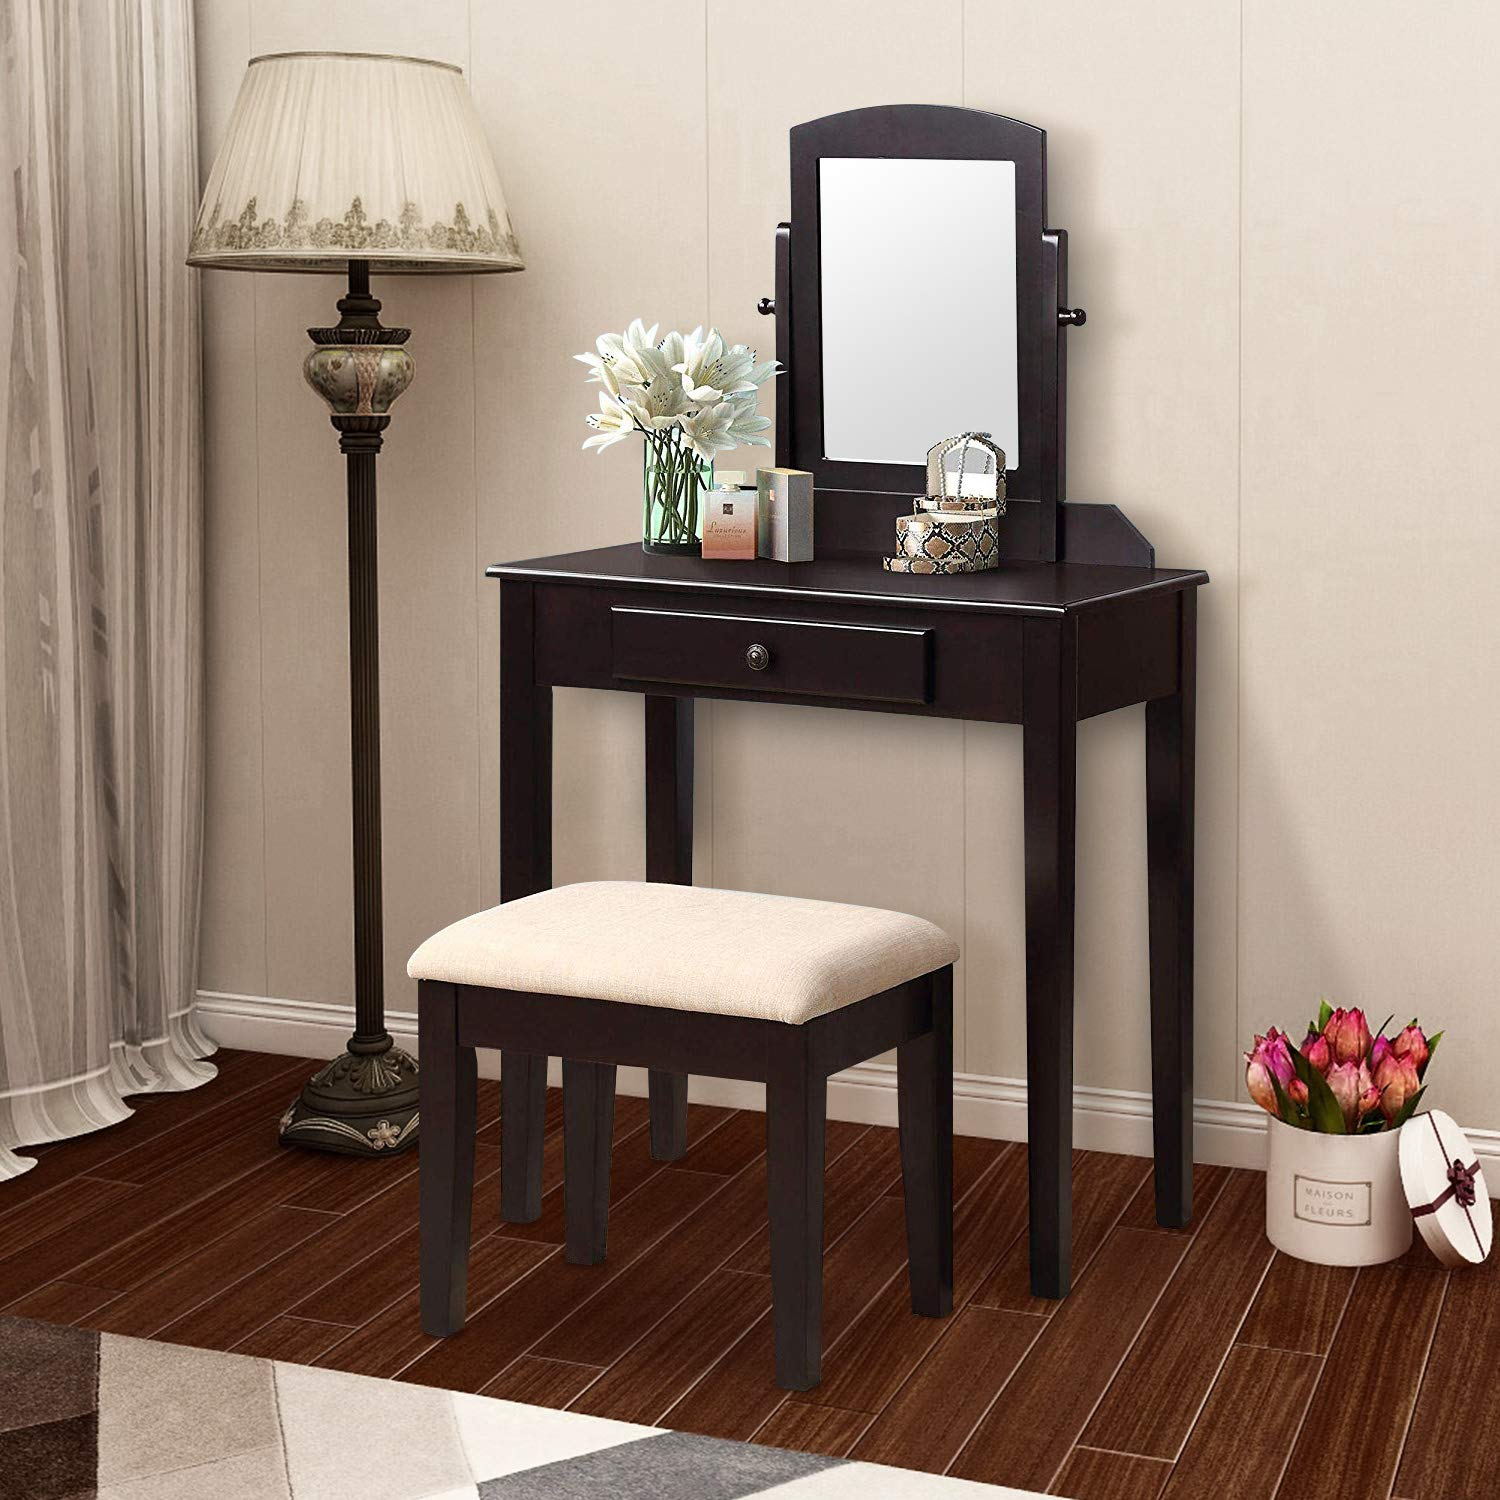 Harper & Bright Designs Vanity Set with Mirror, Make-up Dressing Table with 1 Drawer and Cushioned Stool for Women (Espresso) by Harper & Bright Designs